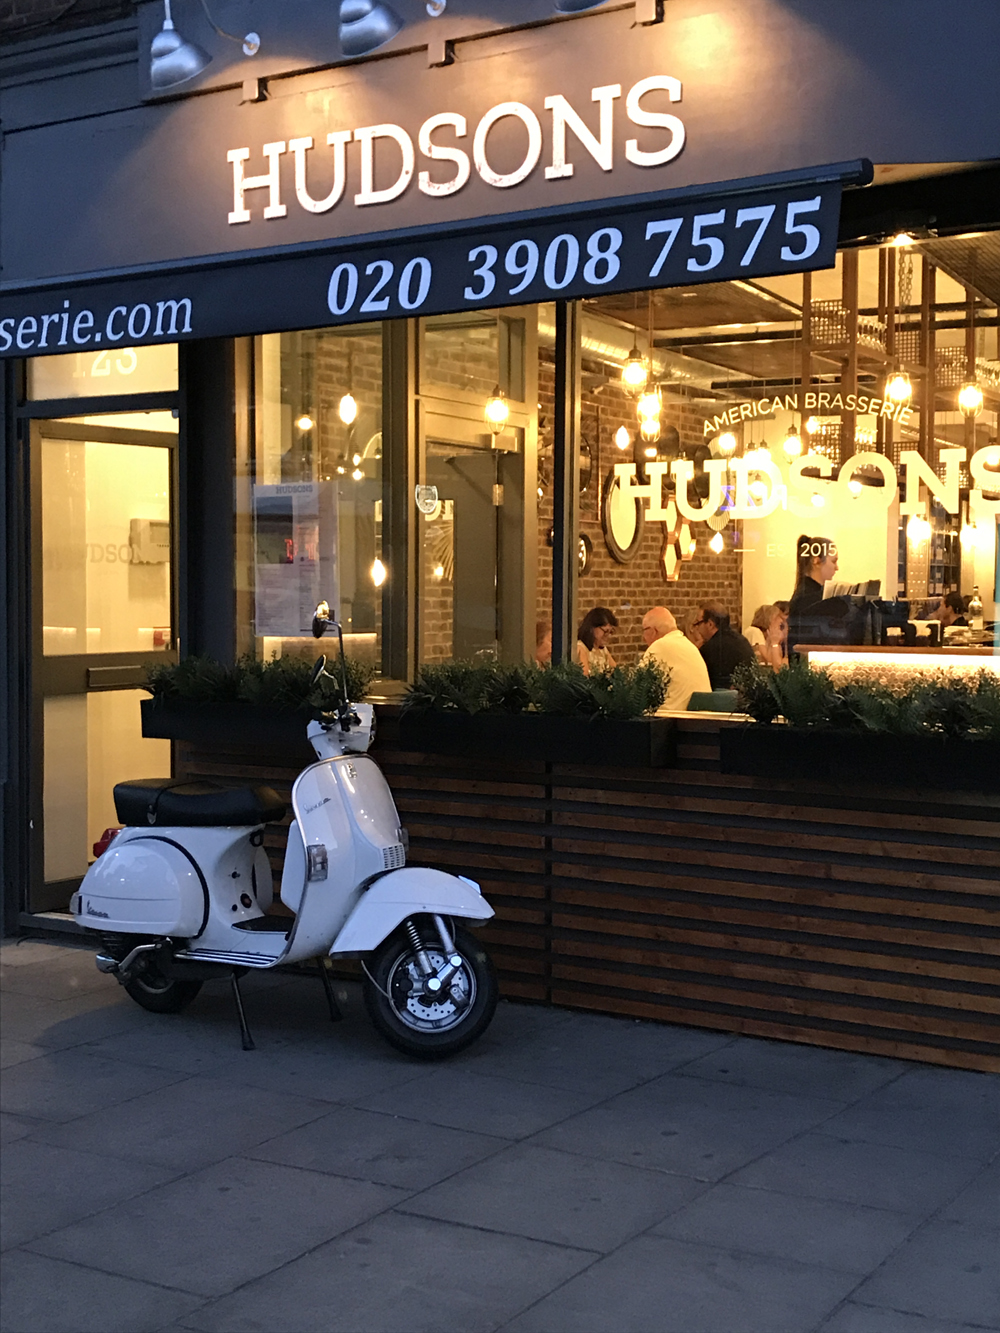 Image result for Hudsons mill hill